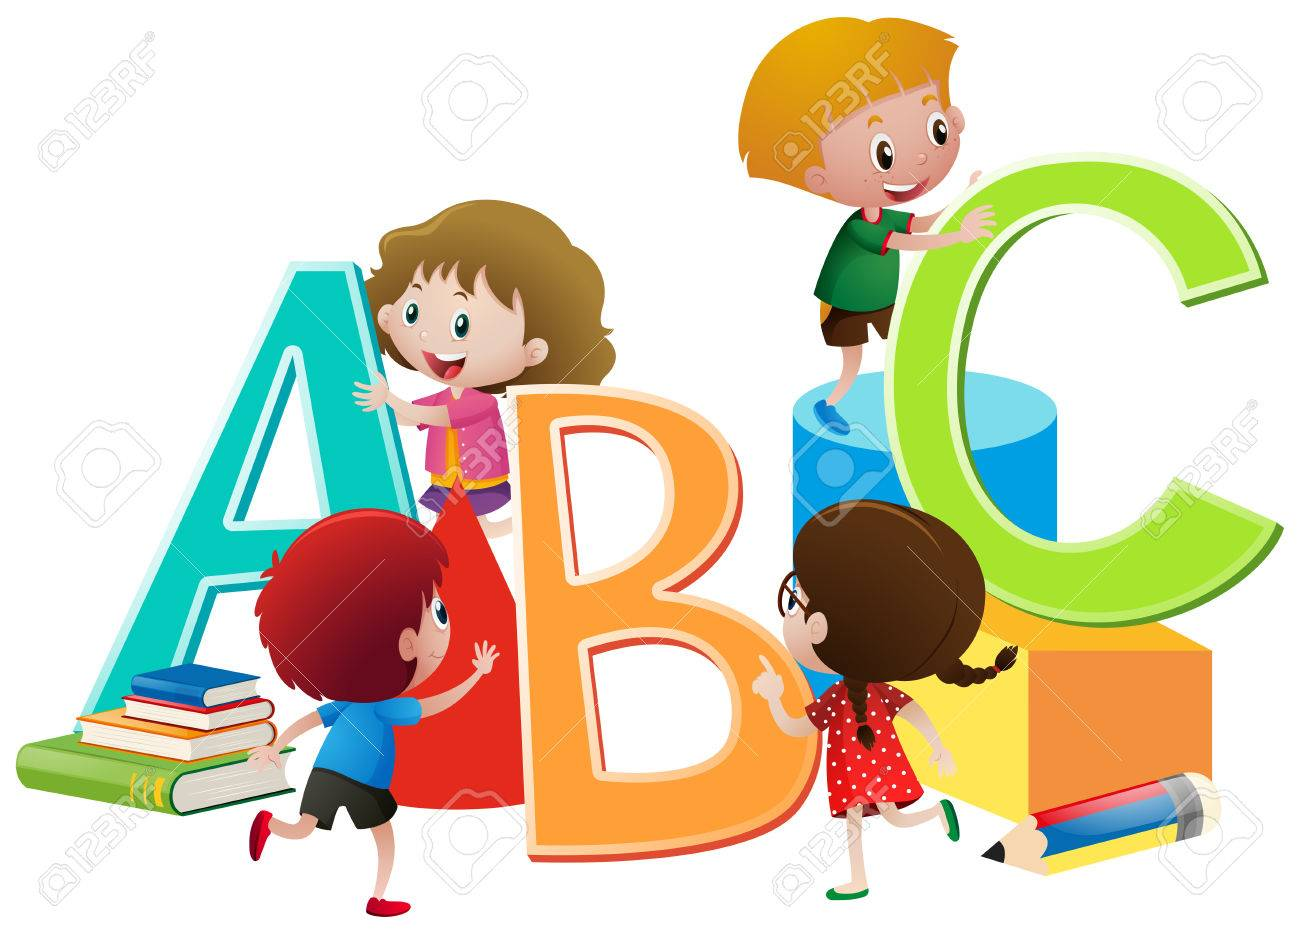 Children With English Alphabets Blocks Illustration Royalty Free Cliparts Vectors And Stock Illustration Image 78179952